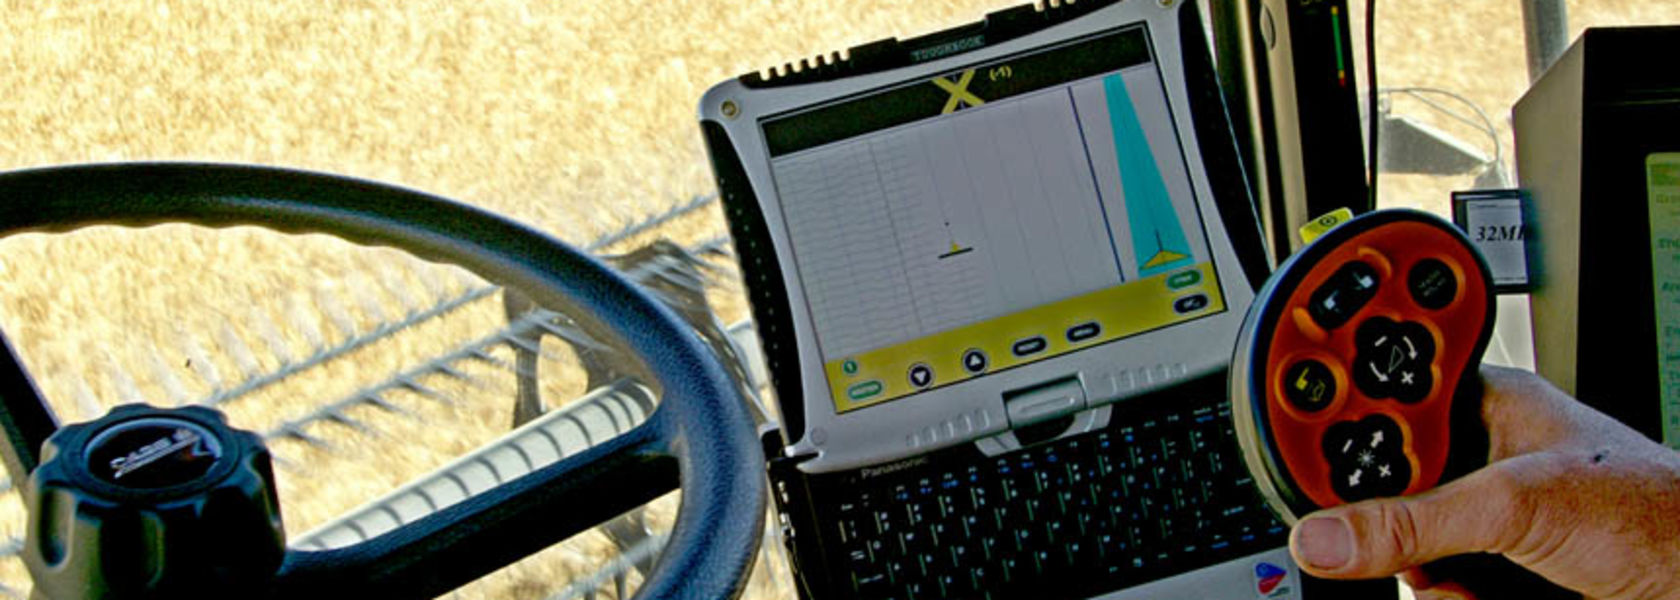 GPS investment to improve farming technology